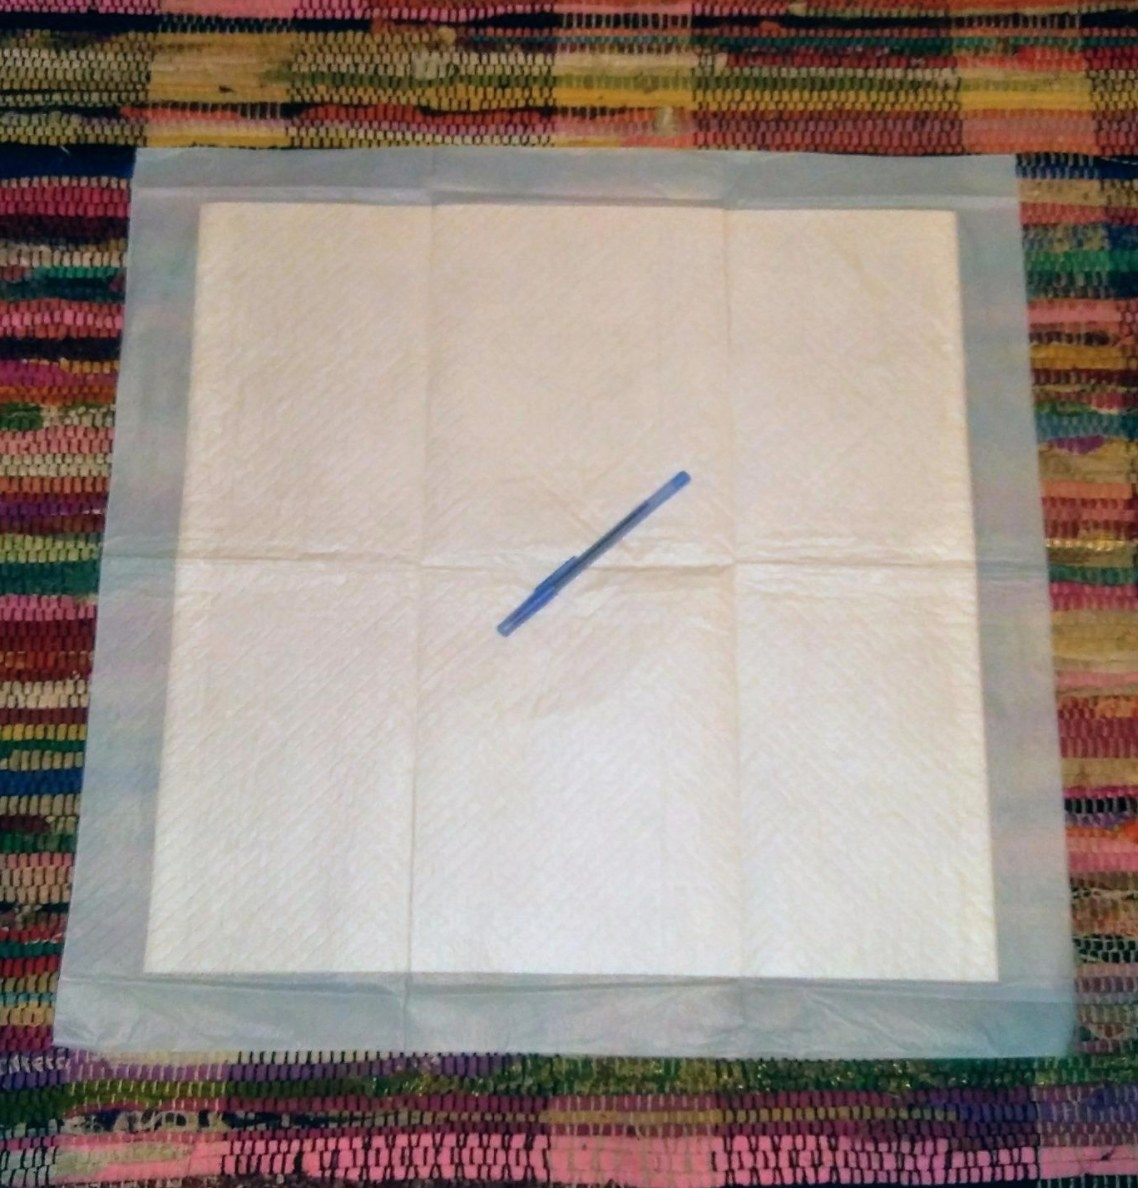 A reviewer's image of a single dog training pad